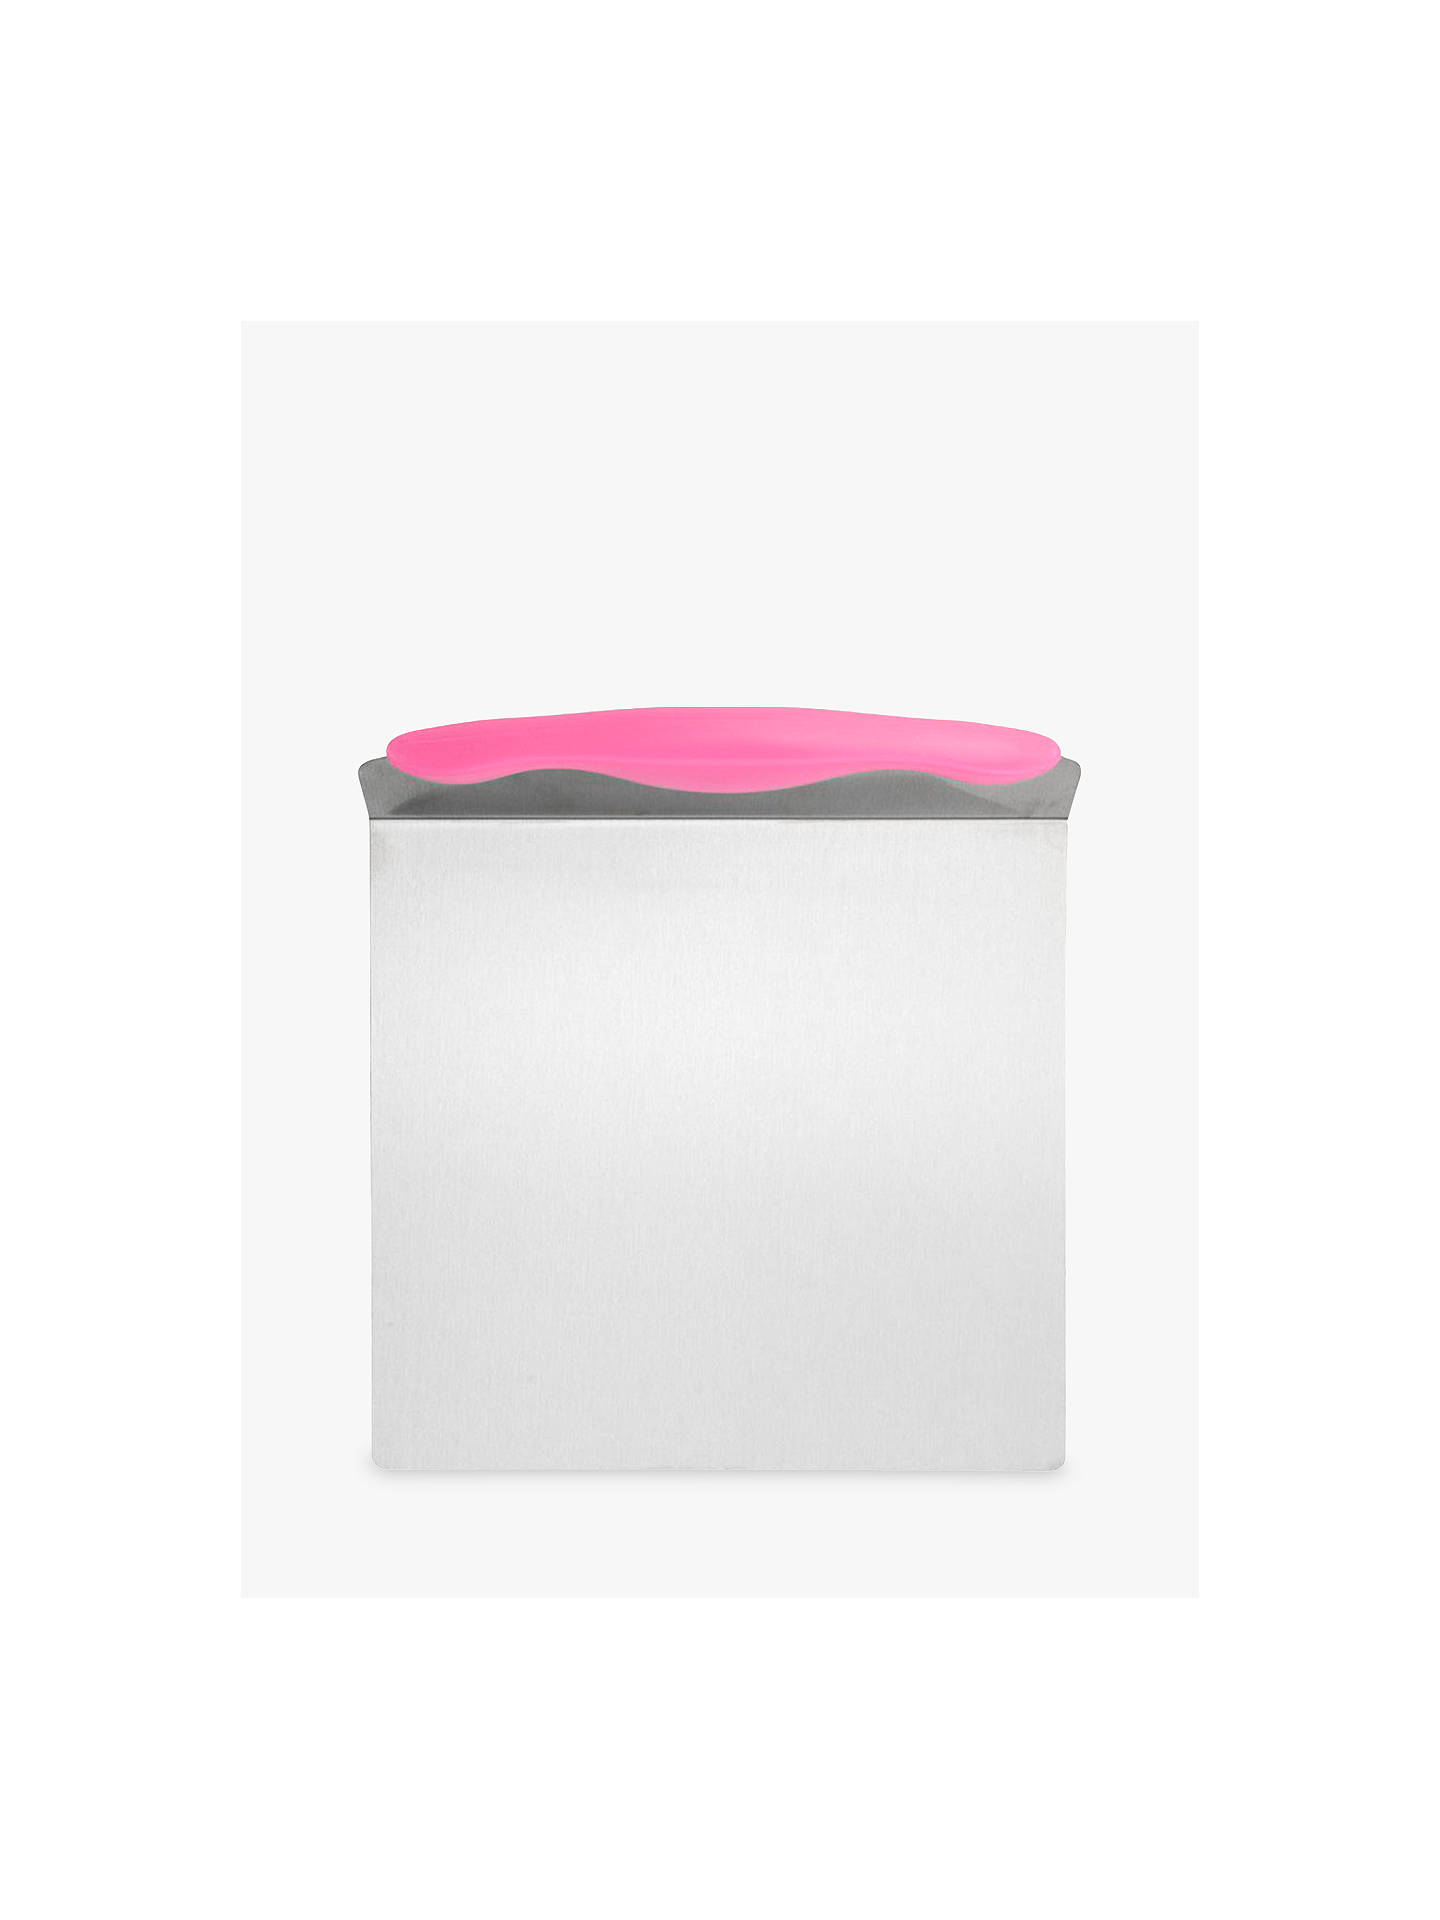 BuyTala Cake Lifter Online at johnlewis.com